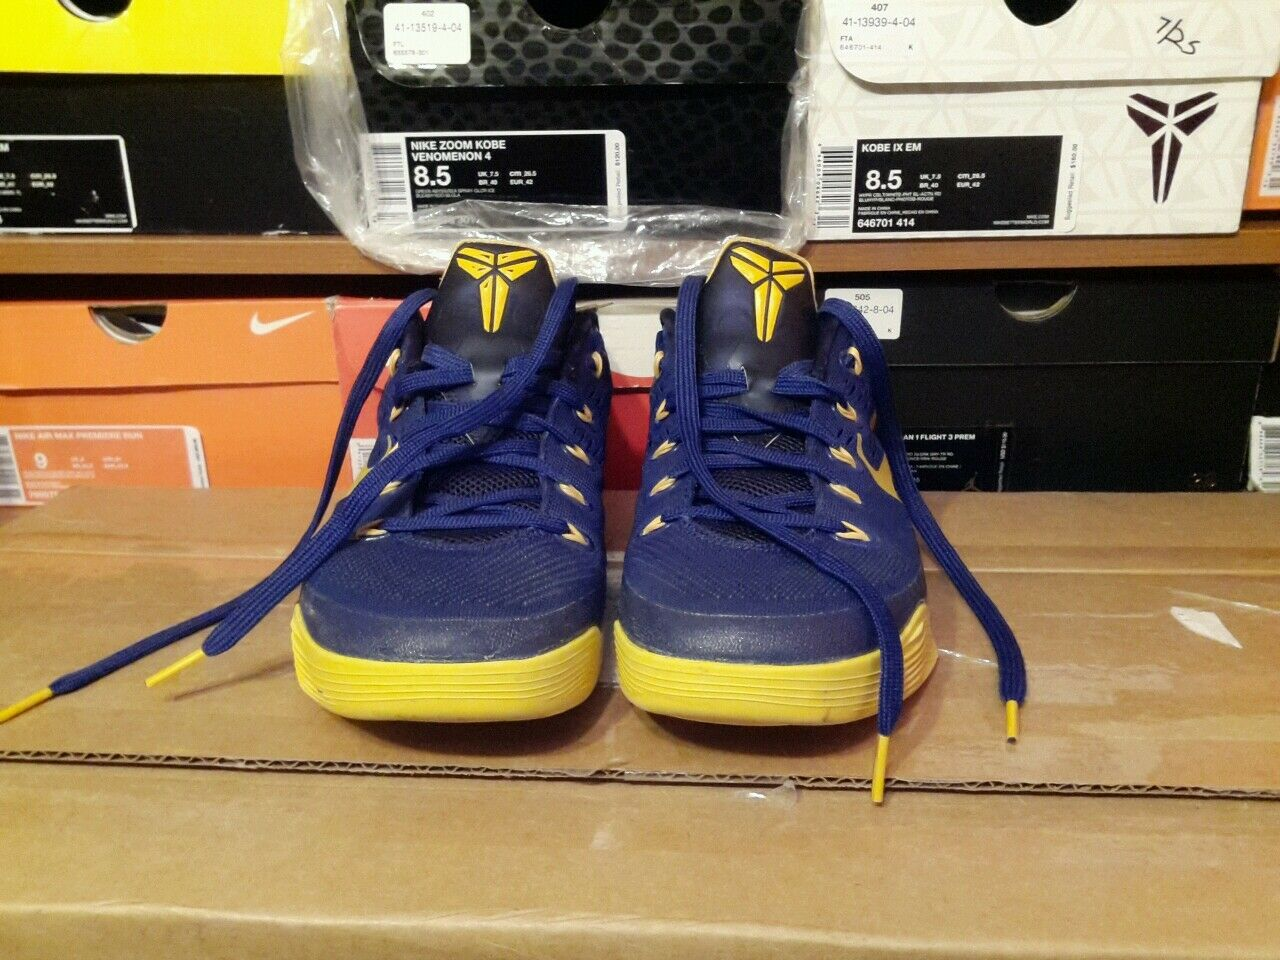 Nike Kobe Shoes Men's size 8.5  blue yellow rare nice zoom mamba